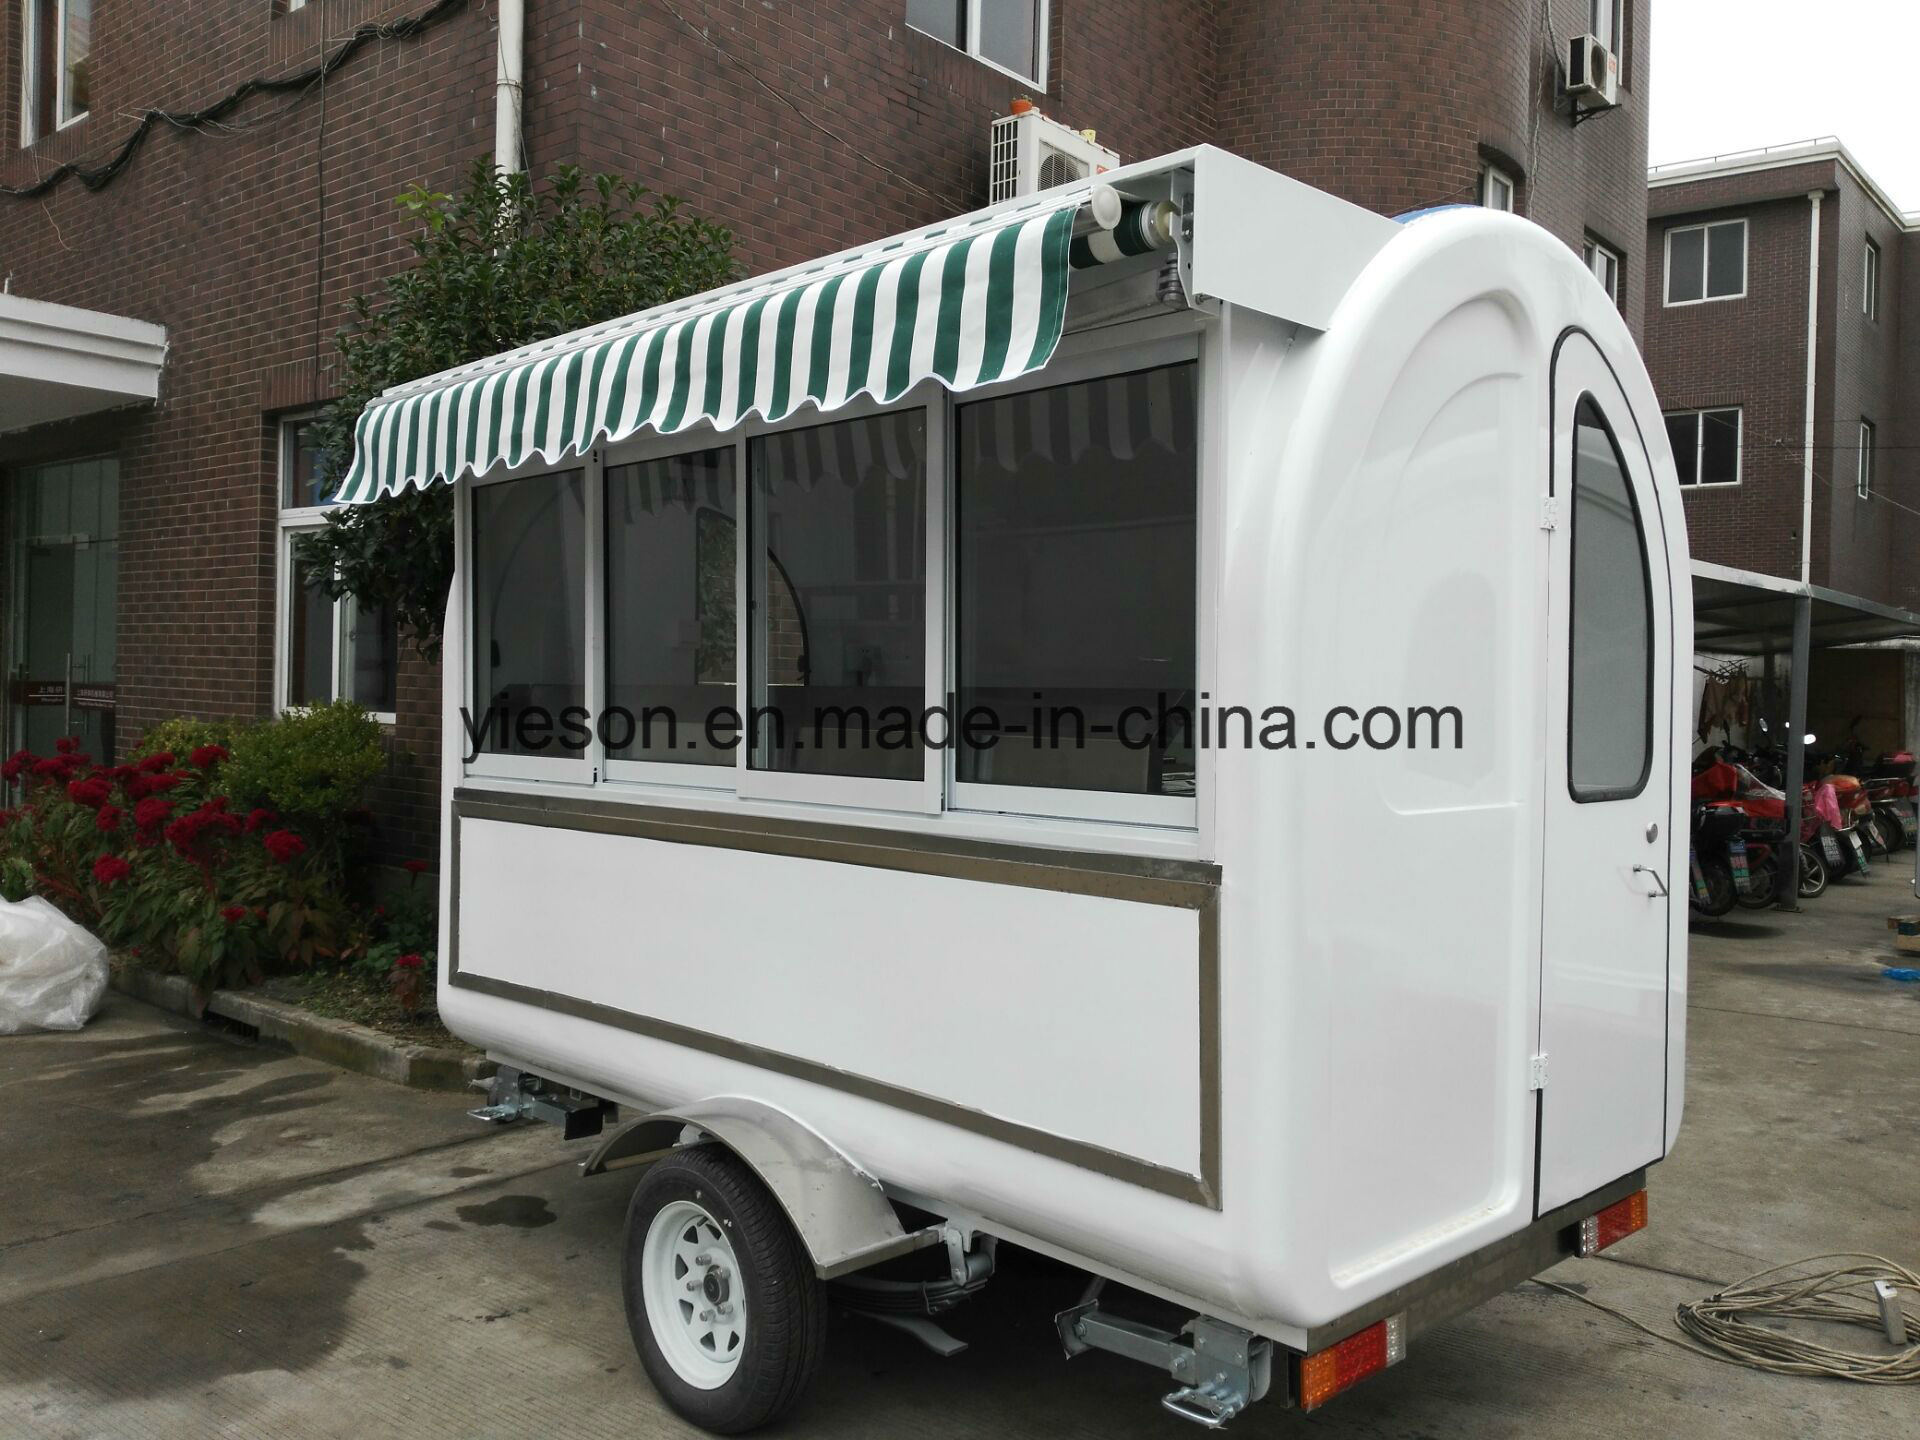 Sliding Glass Windows Mobile Snack Trailer